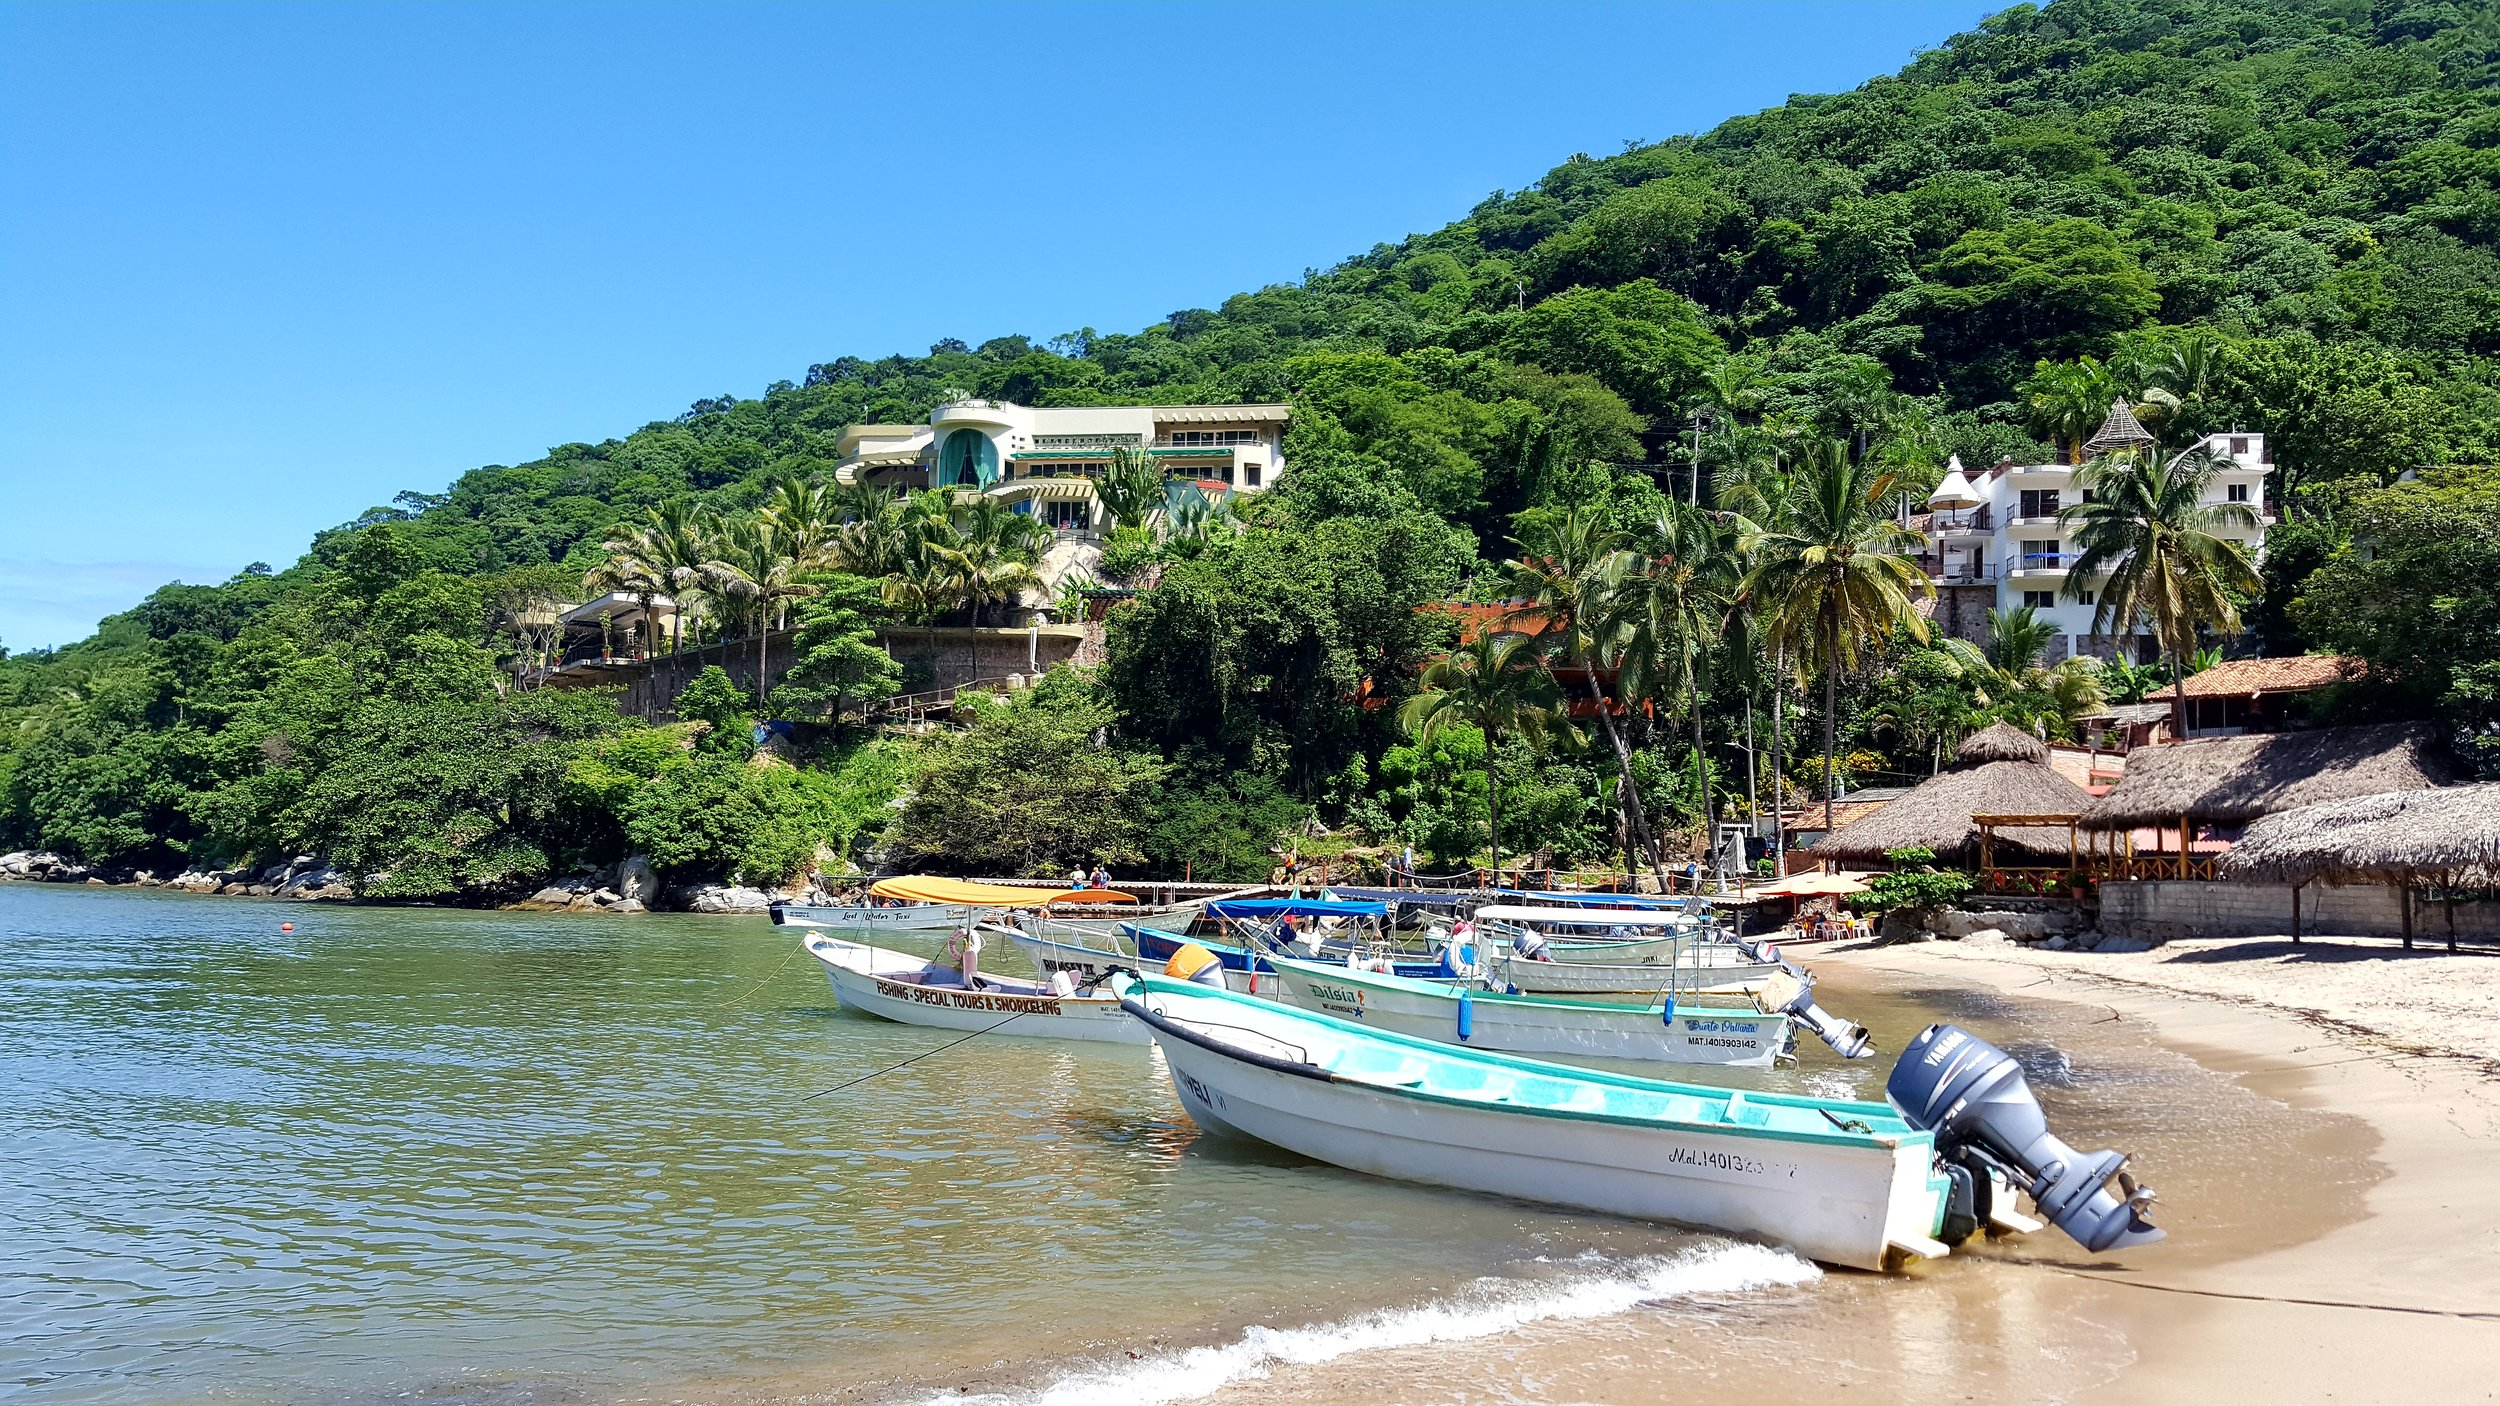 Before hiking in Yelapa, we took a water taxi from Boca de Tomatlan